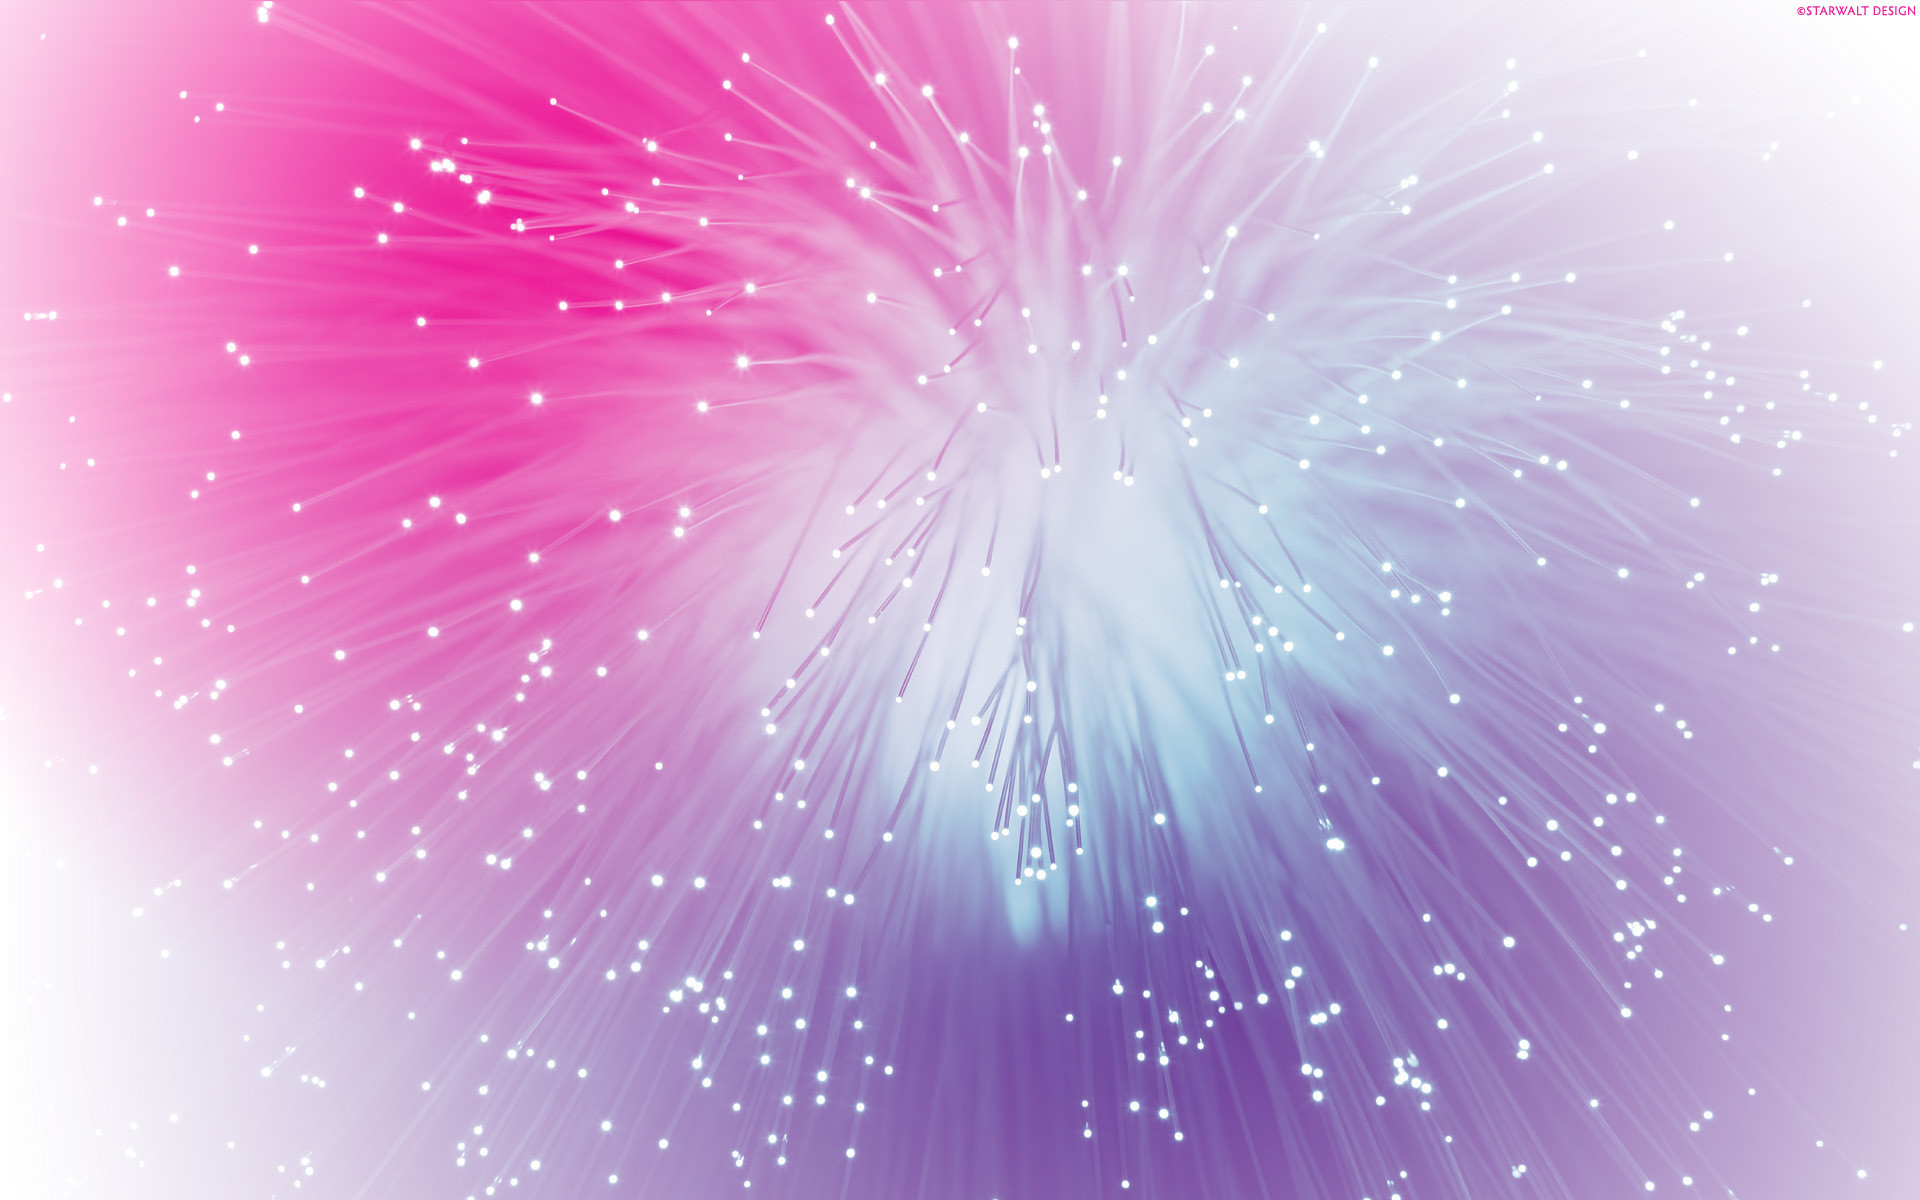 pink wallpapers, purple, white, blue, lines, points, lights, glow